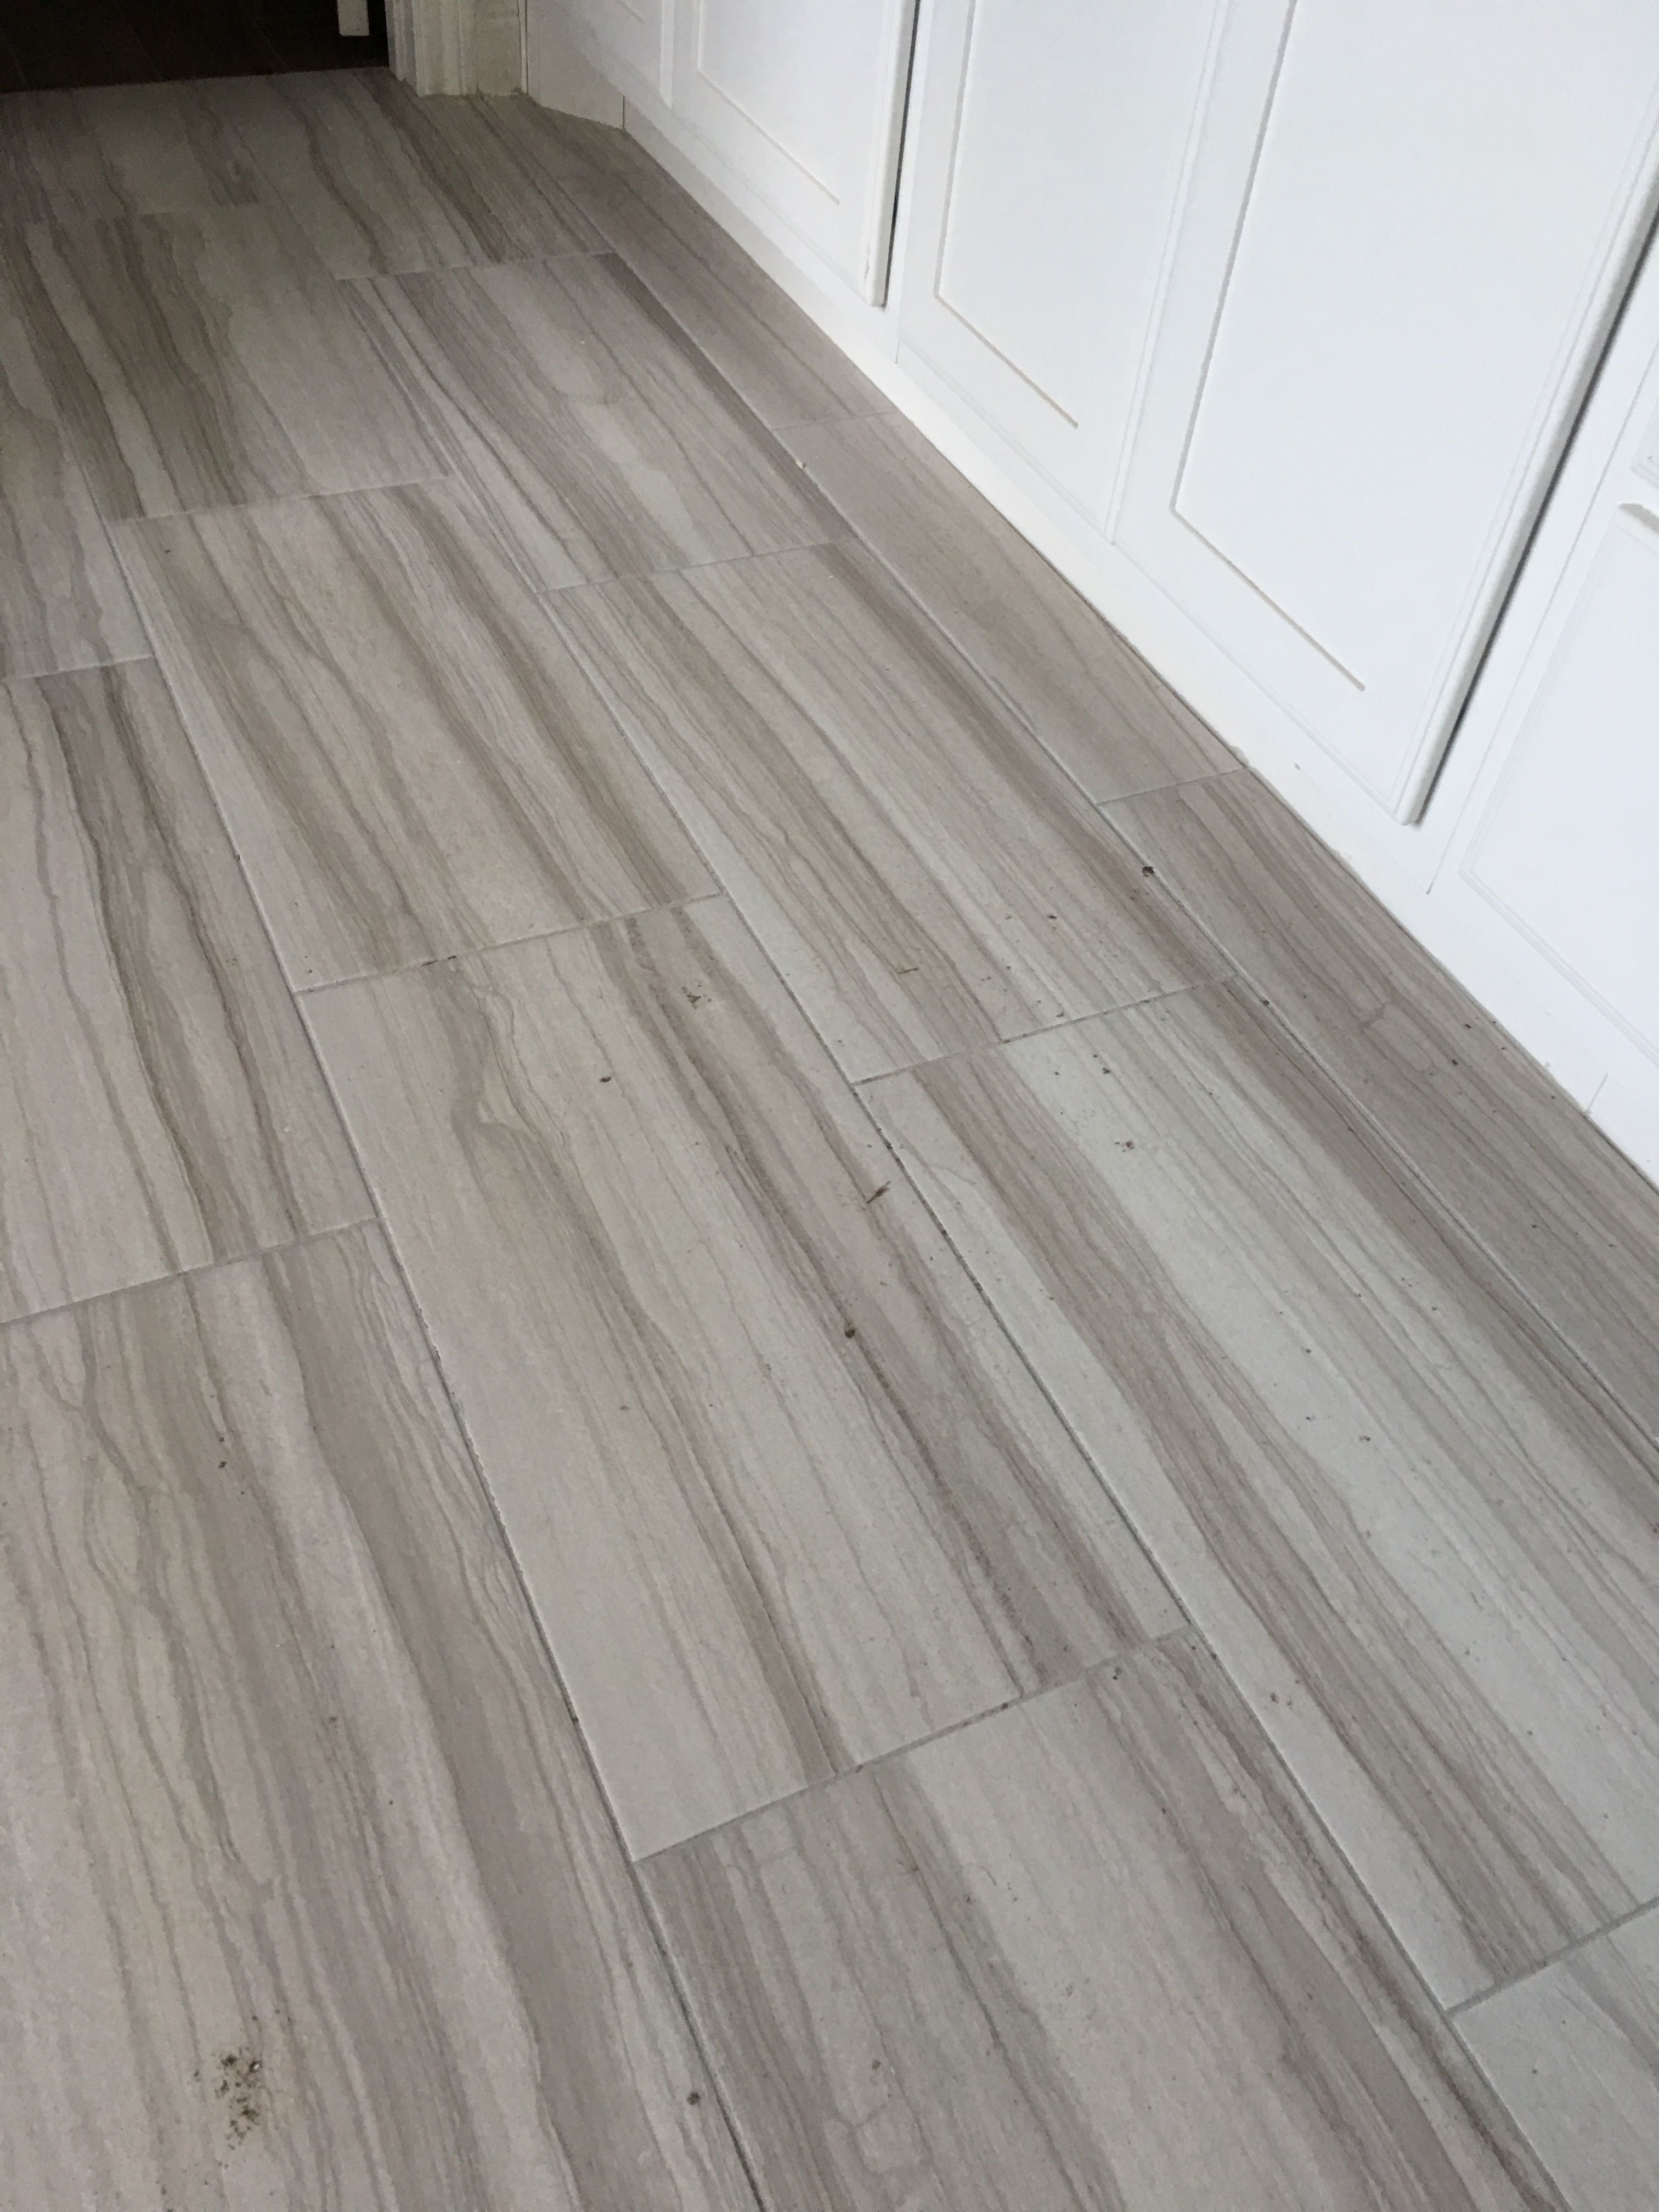 Interceramic Burano Bianca Veletta 12 X 24 W 1 8 Grout Lines Texrite Chromaflex Executive Grey Grout 12x24 Tile Wood Tile Floors Discount Tile